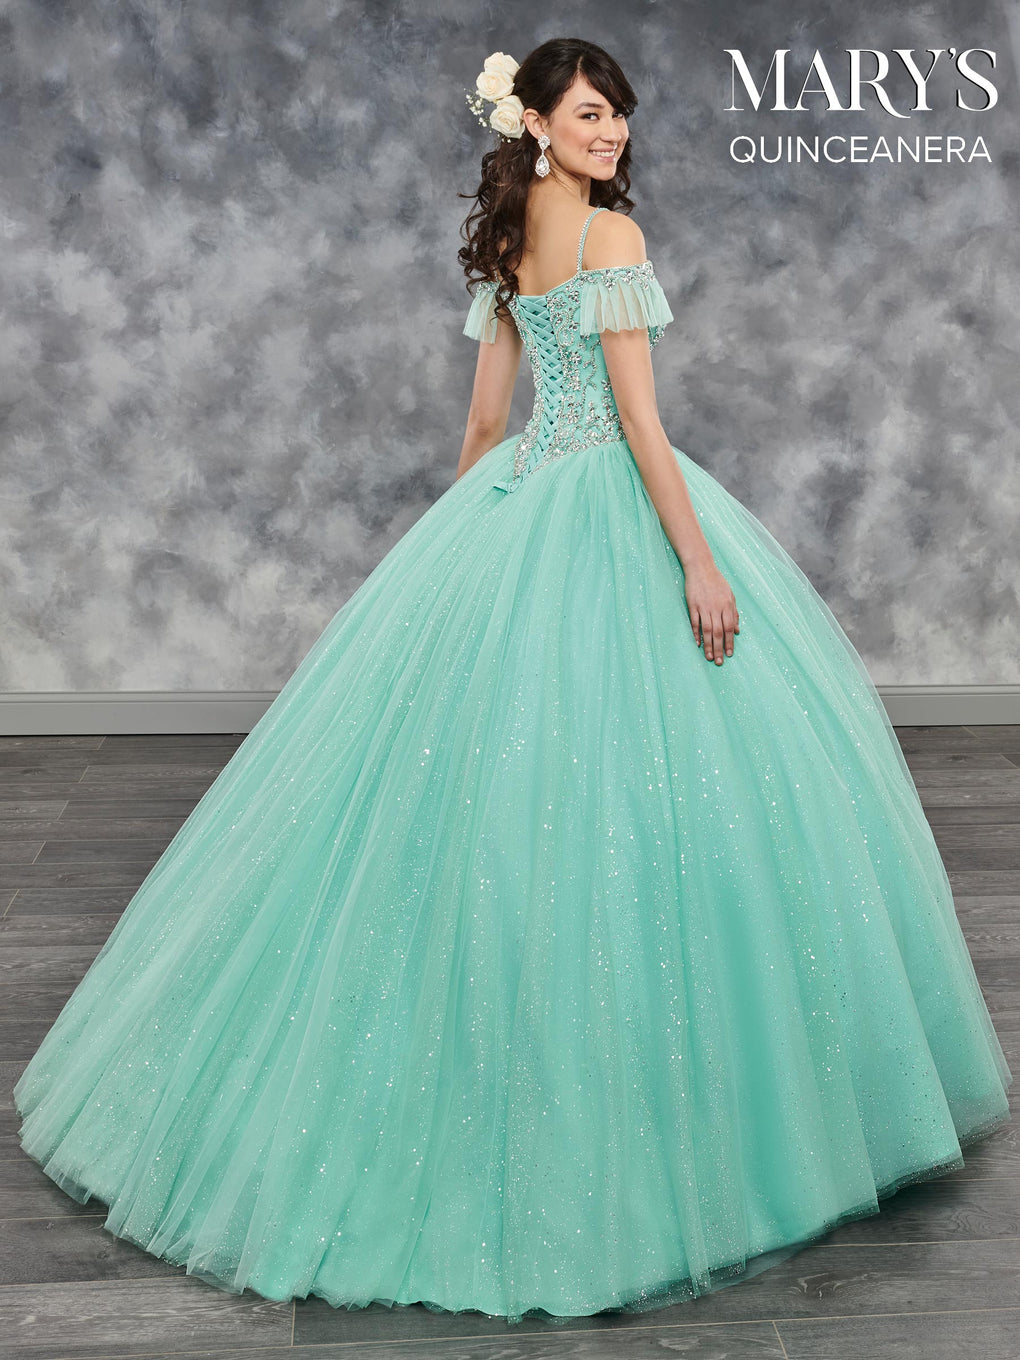 Marys Quinceanera Dresses in Burgundy, Magenta, Mint, Royal, or White Color